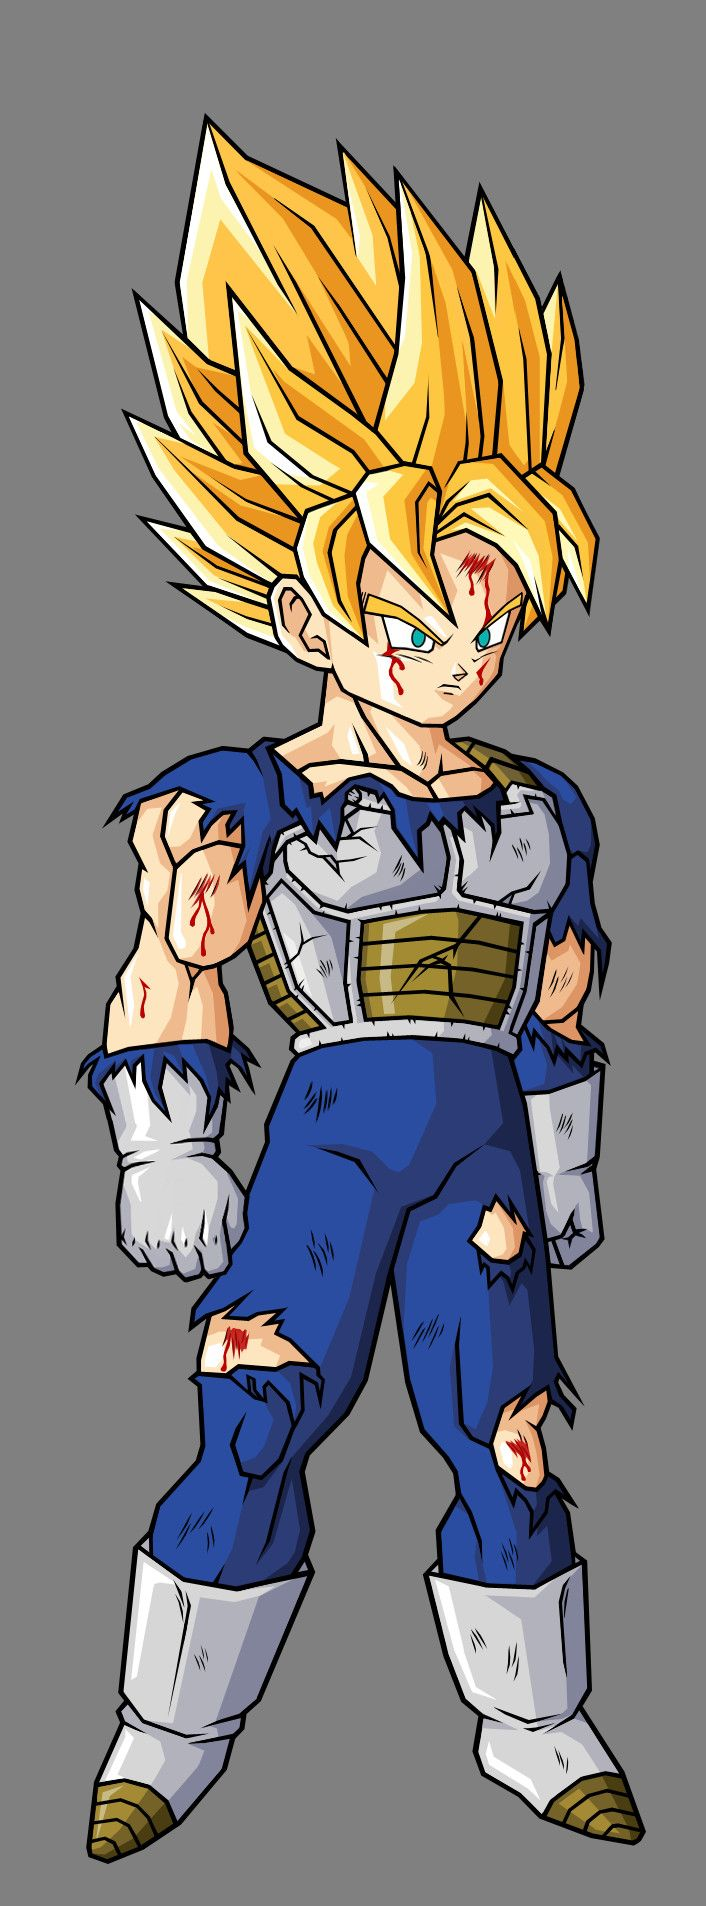 Pre Teen Goku SSJ, In Saiyan Armor by ~hsvhrt on deviantART